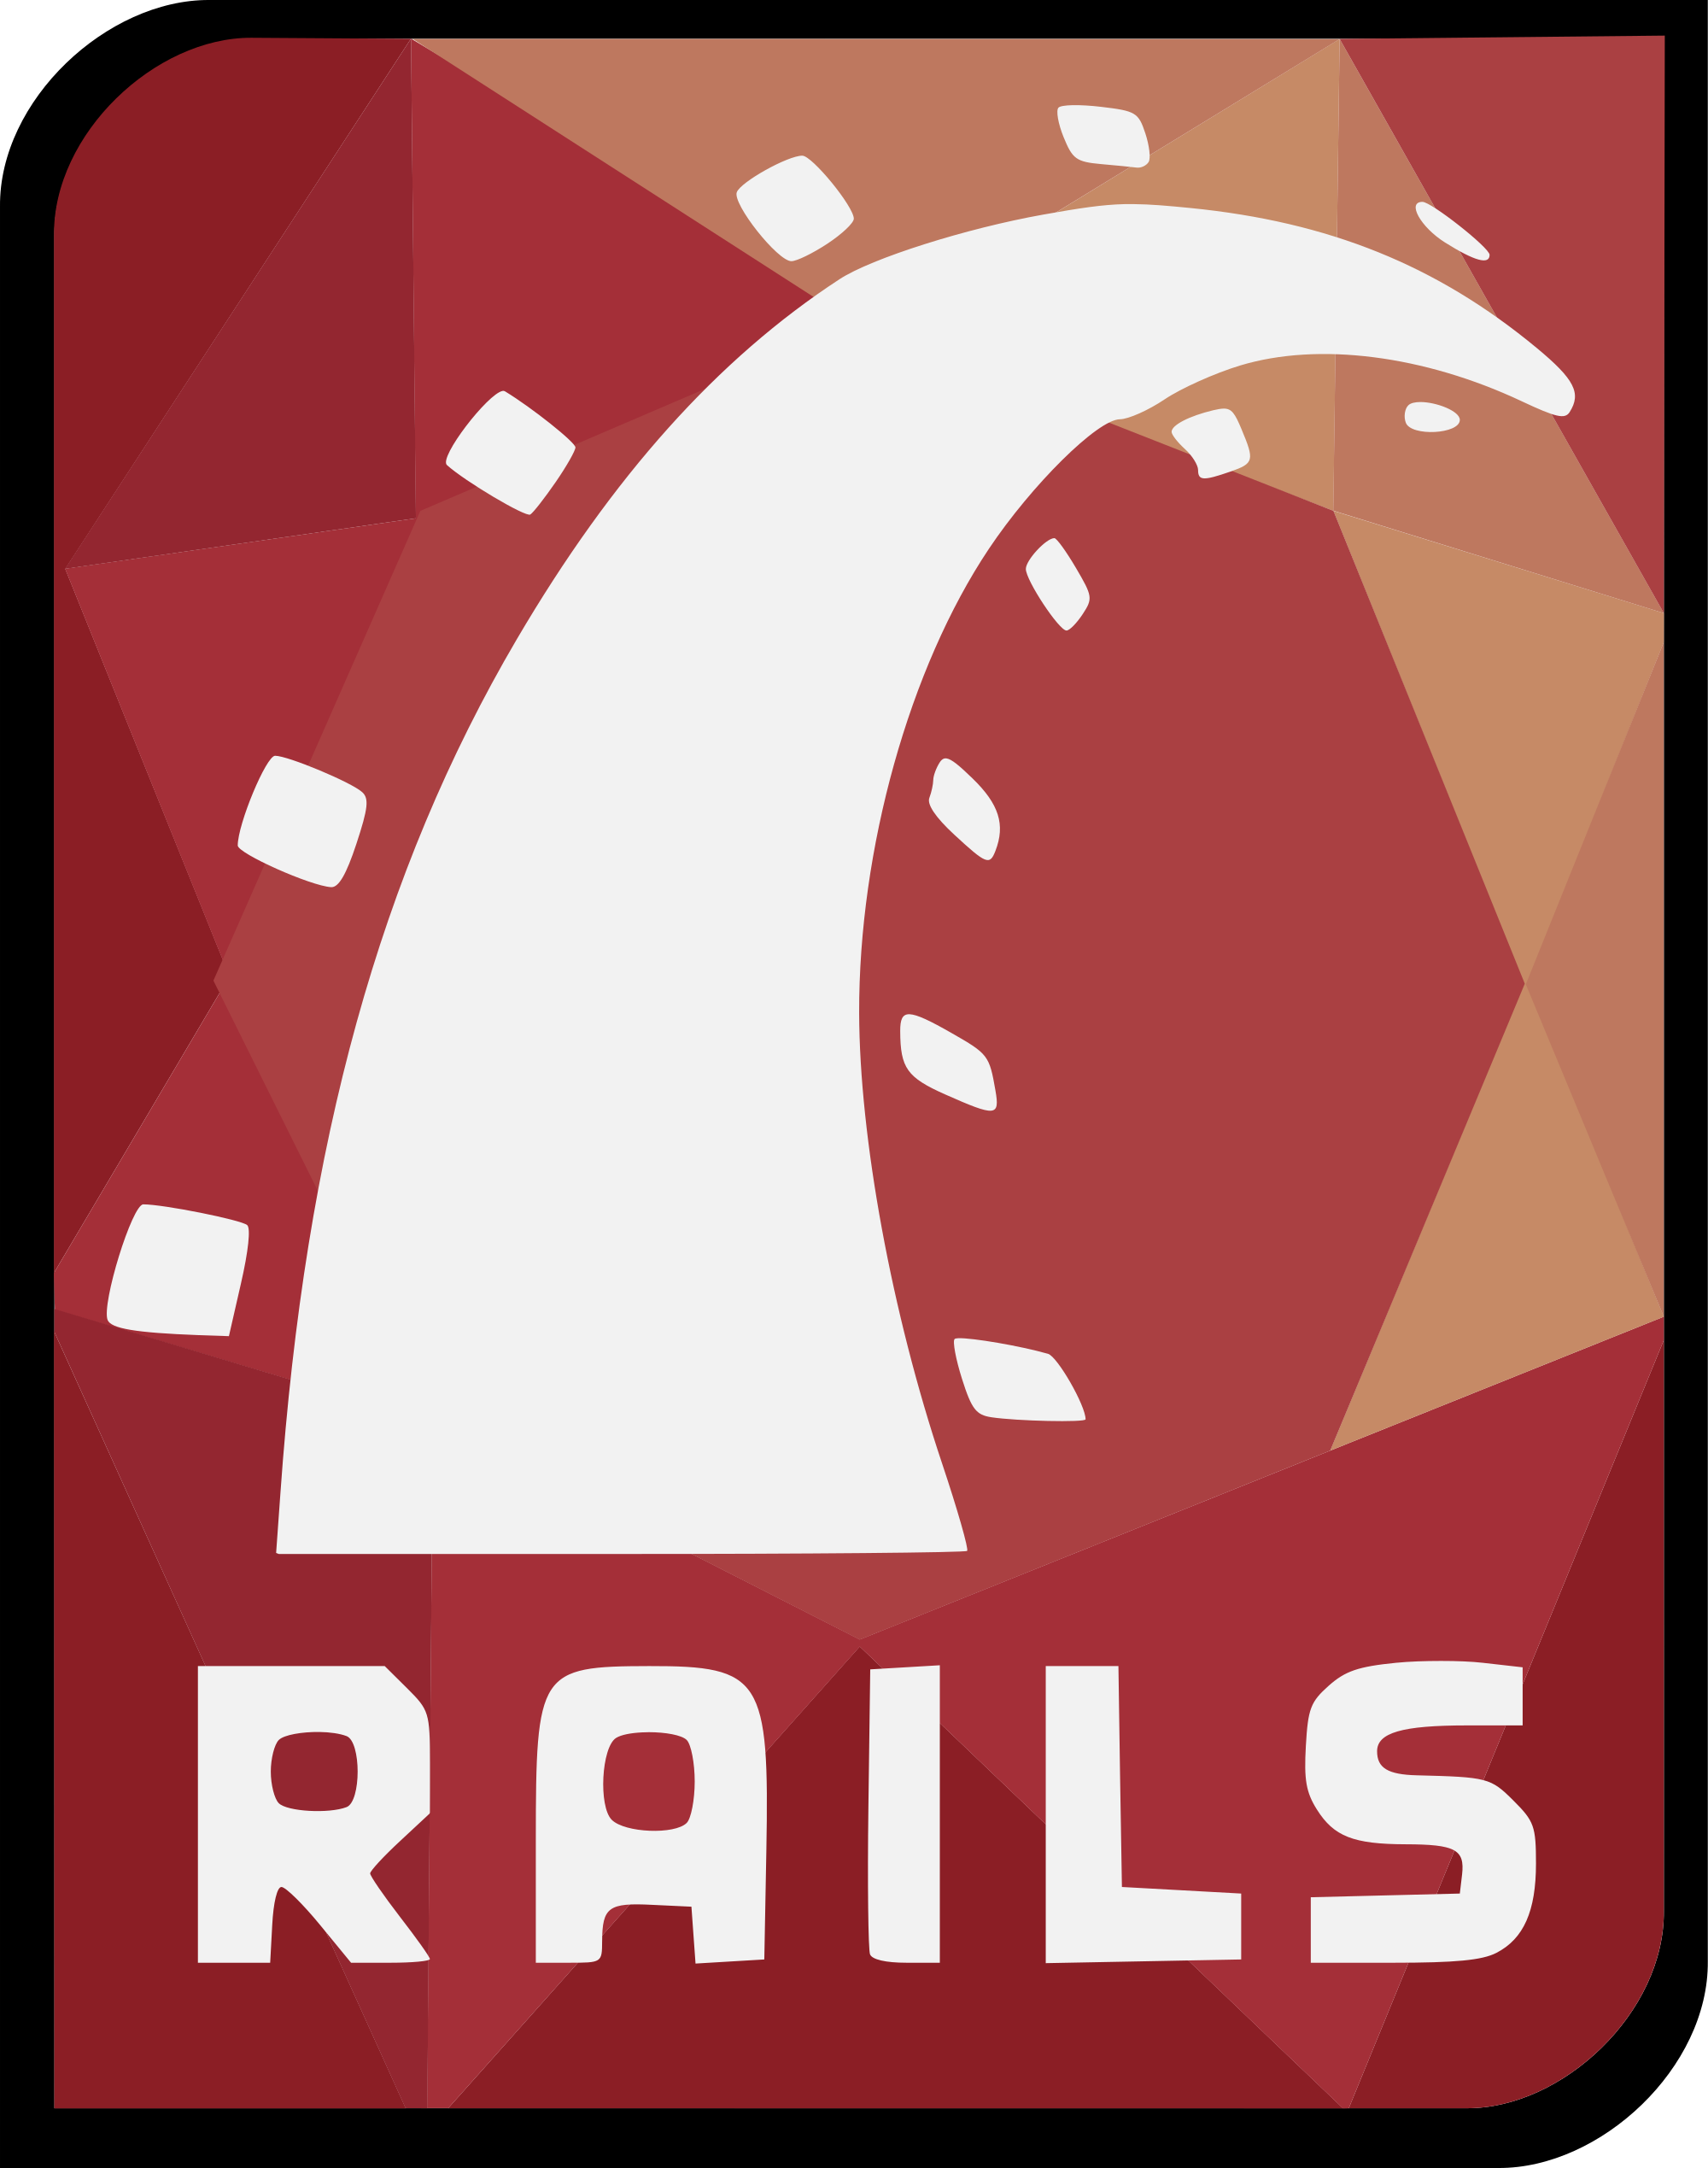 I will create a professional base to start a rails app